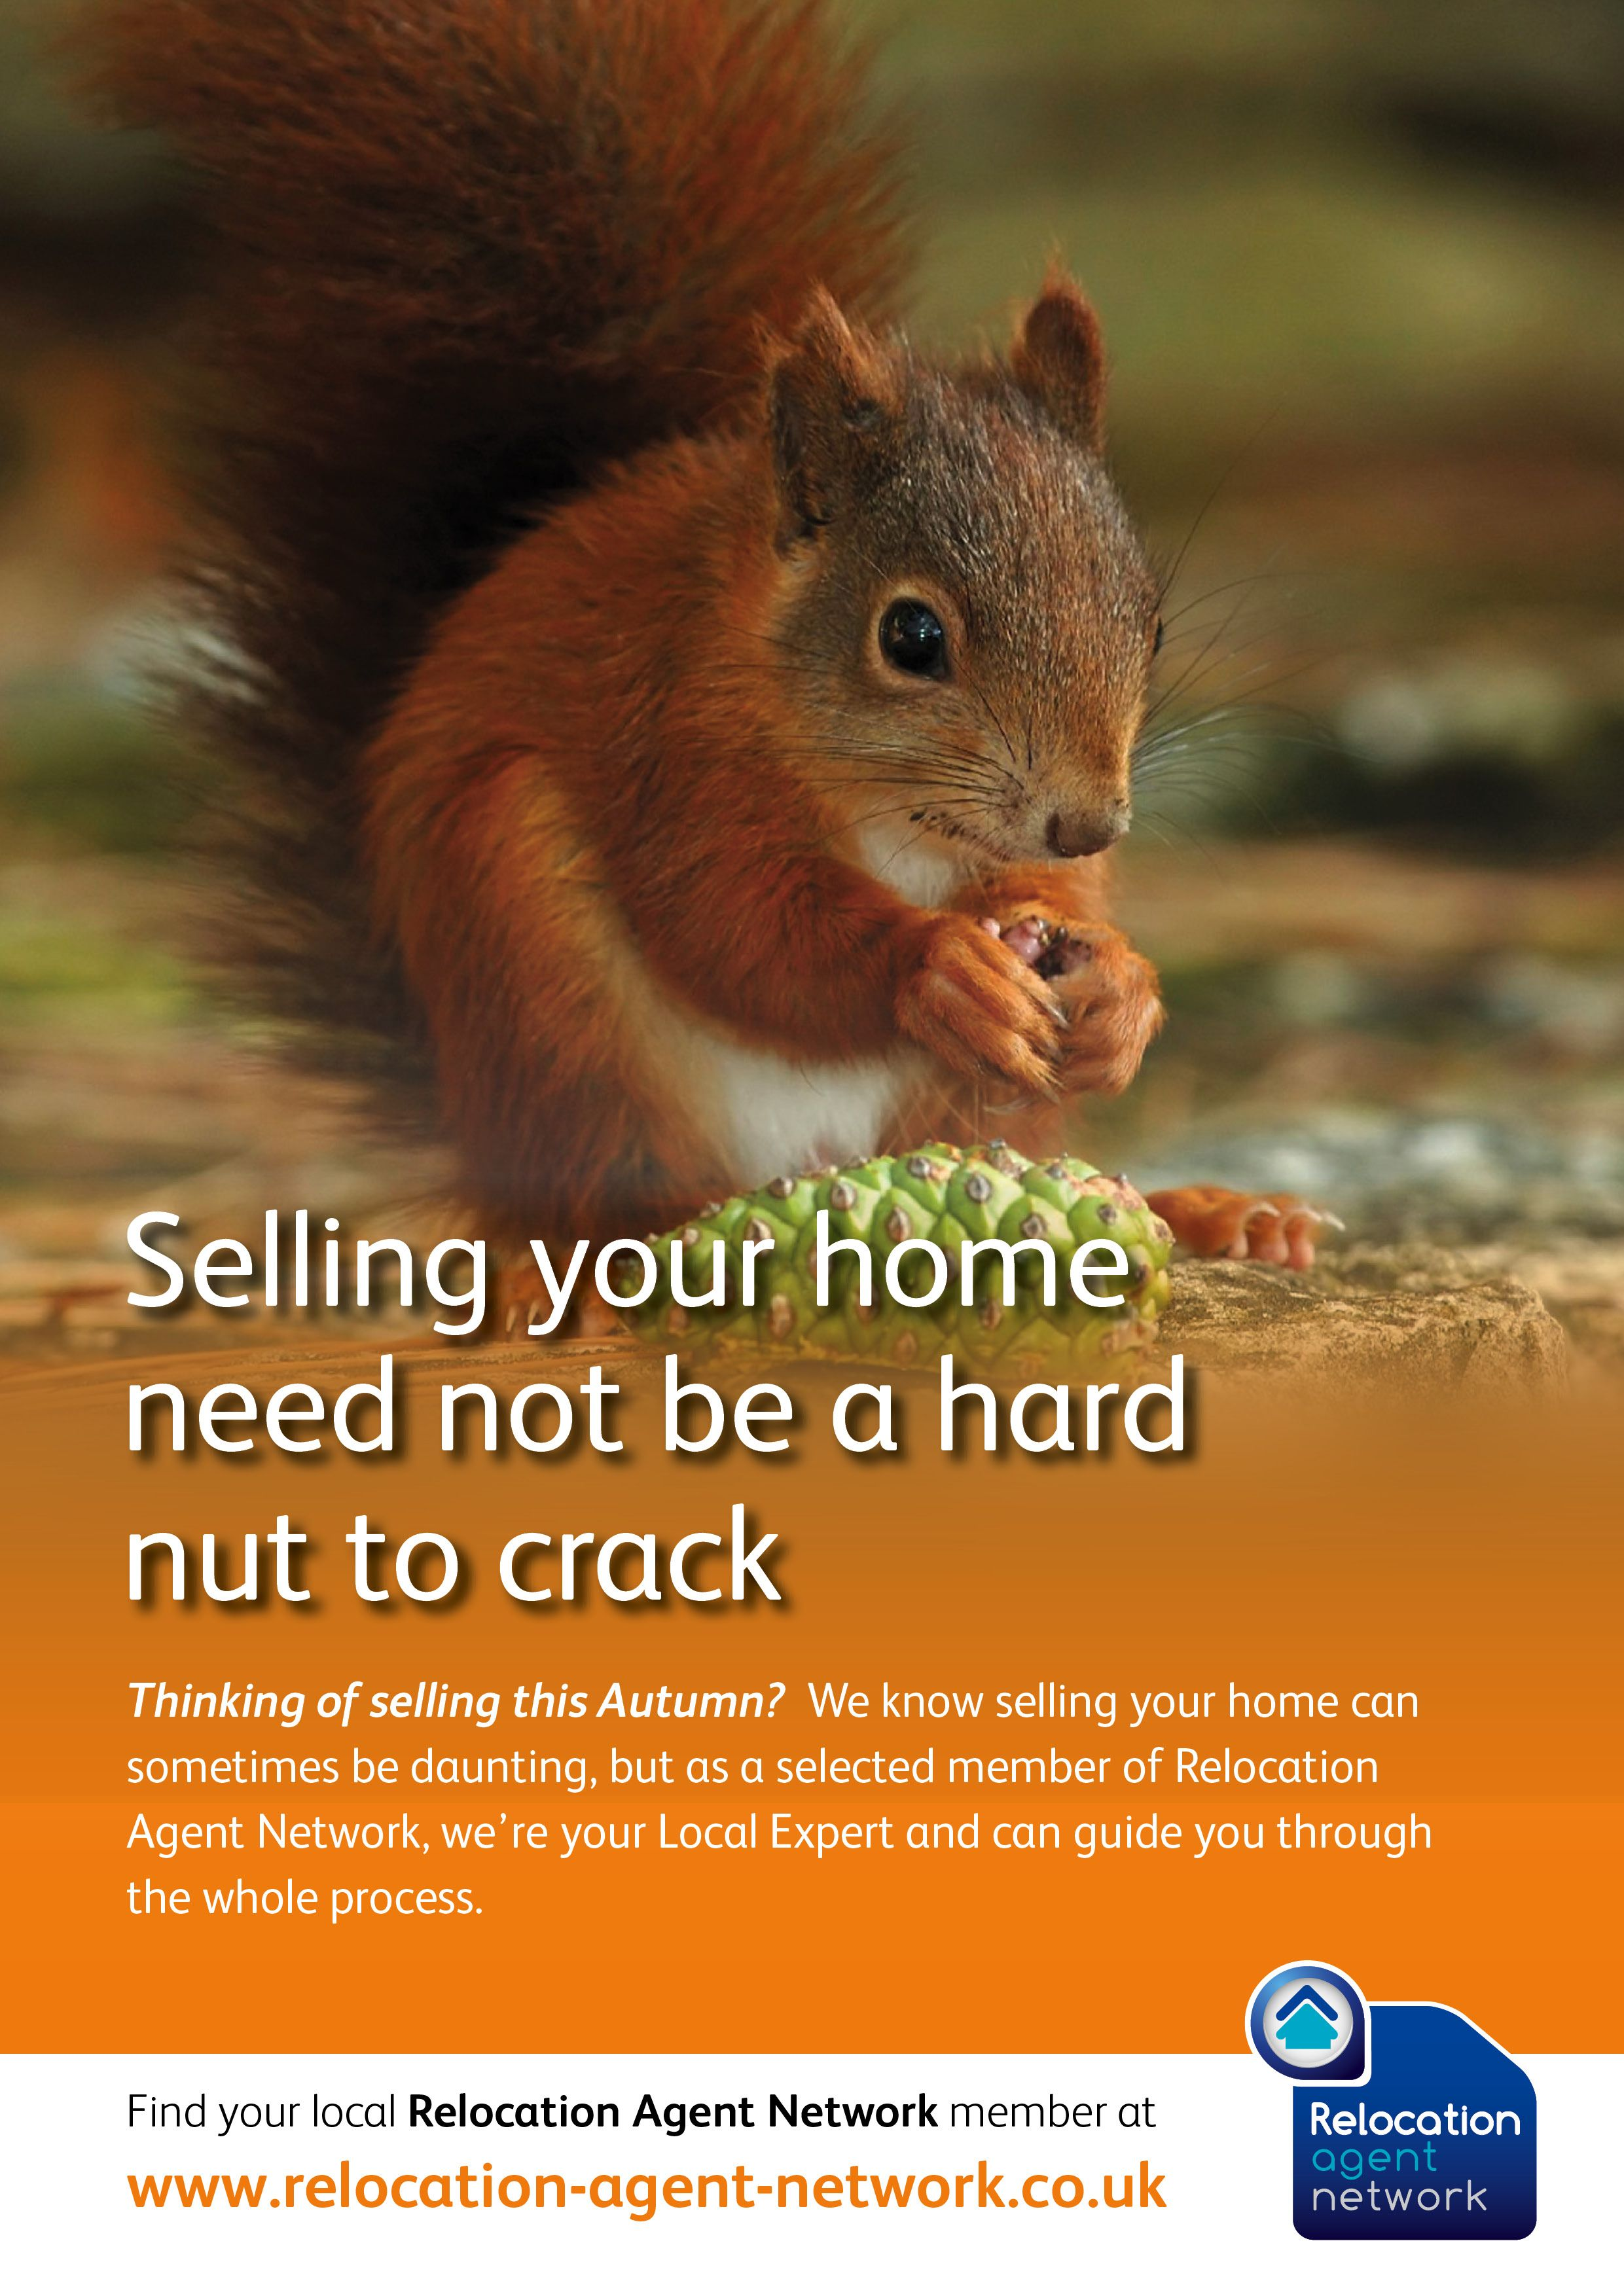 Selling your home need not be a hard not to crack! Talk to your local Relocation Agent Network specialist about selling this Autumn on 0161 925 3255.  http://www.ryder-dutton.co.uk/